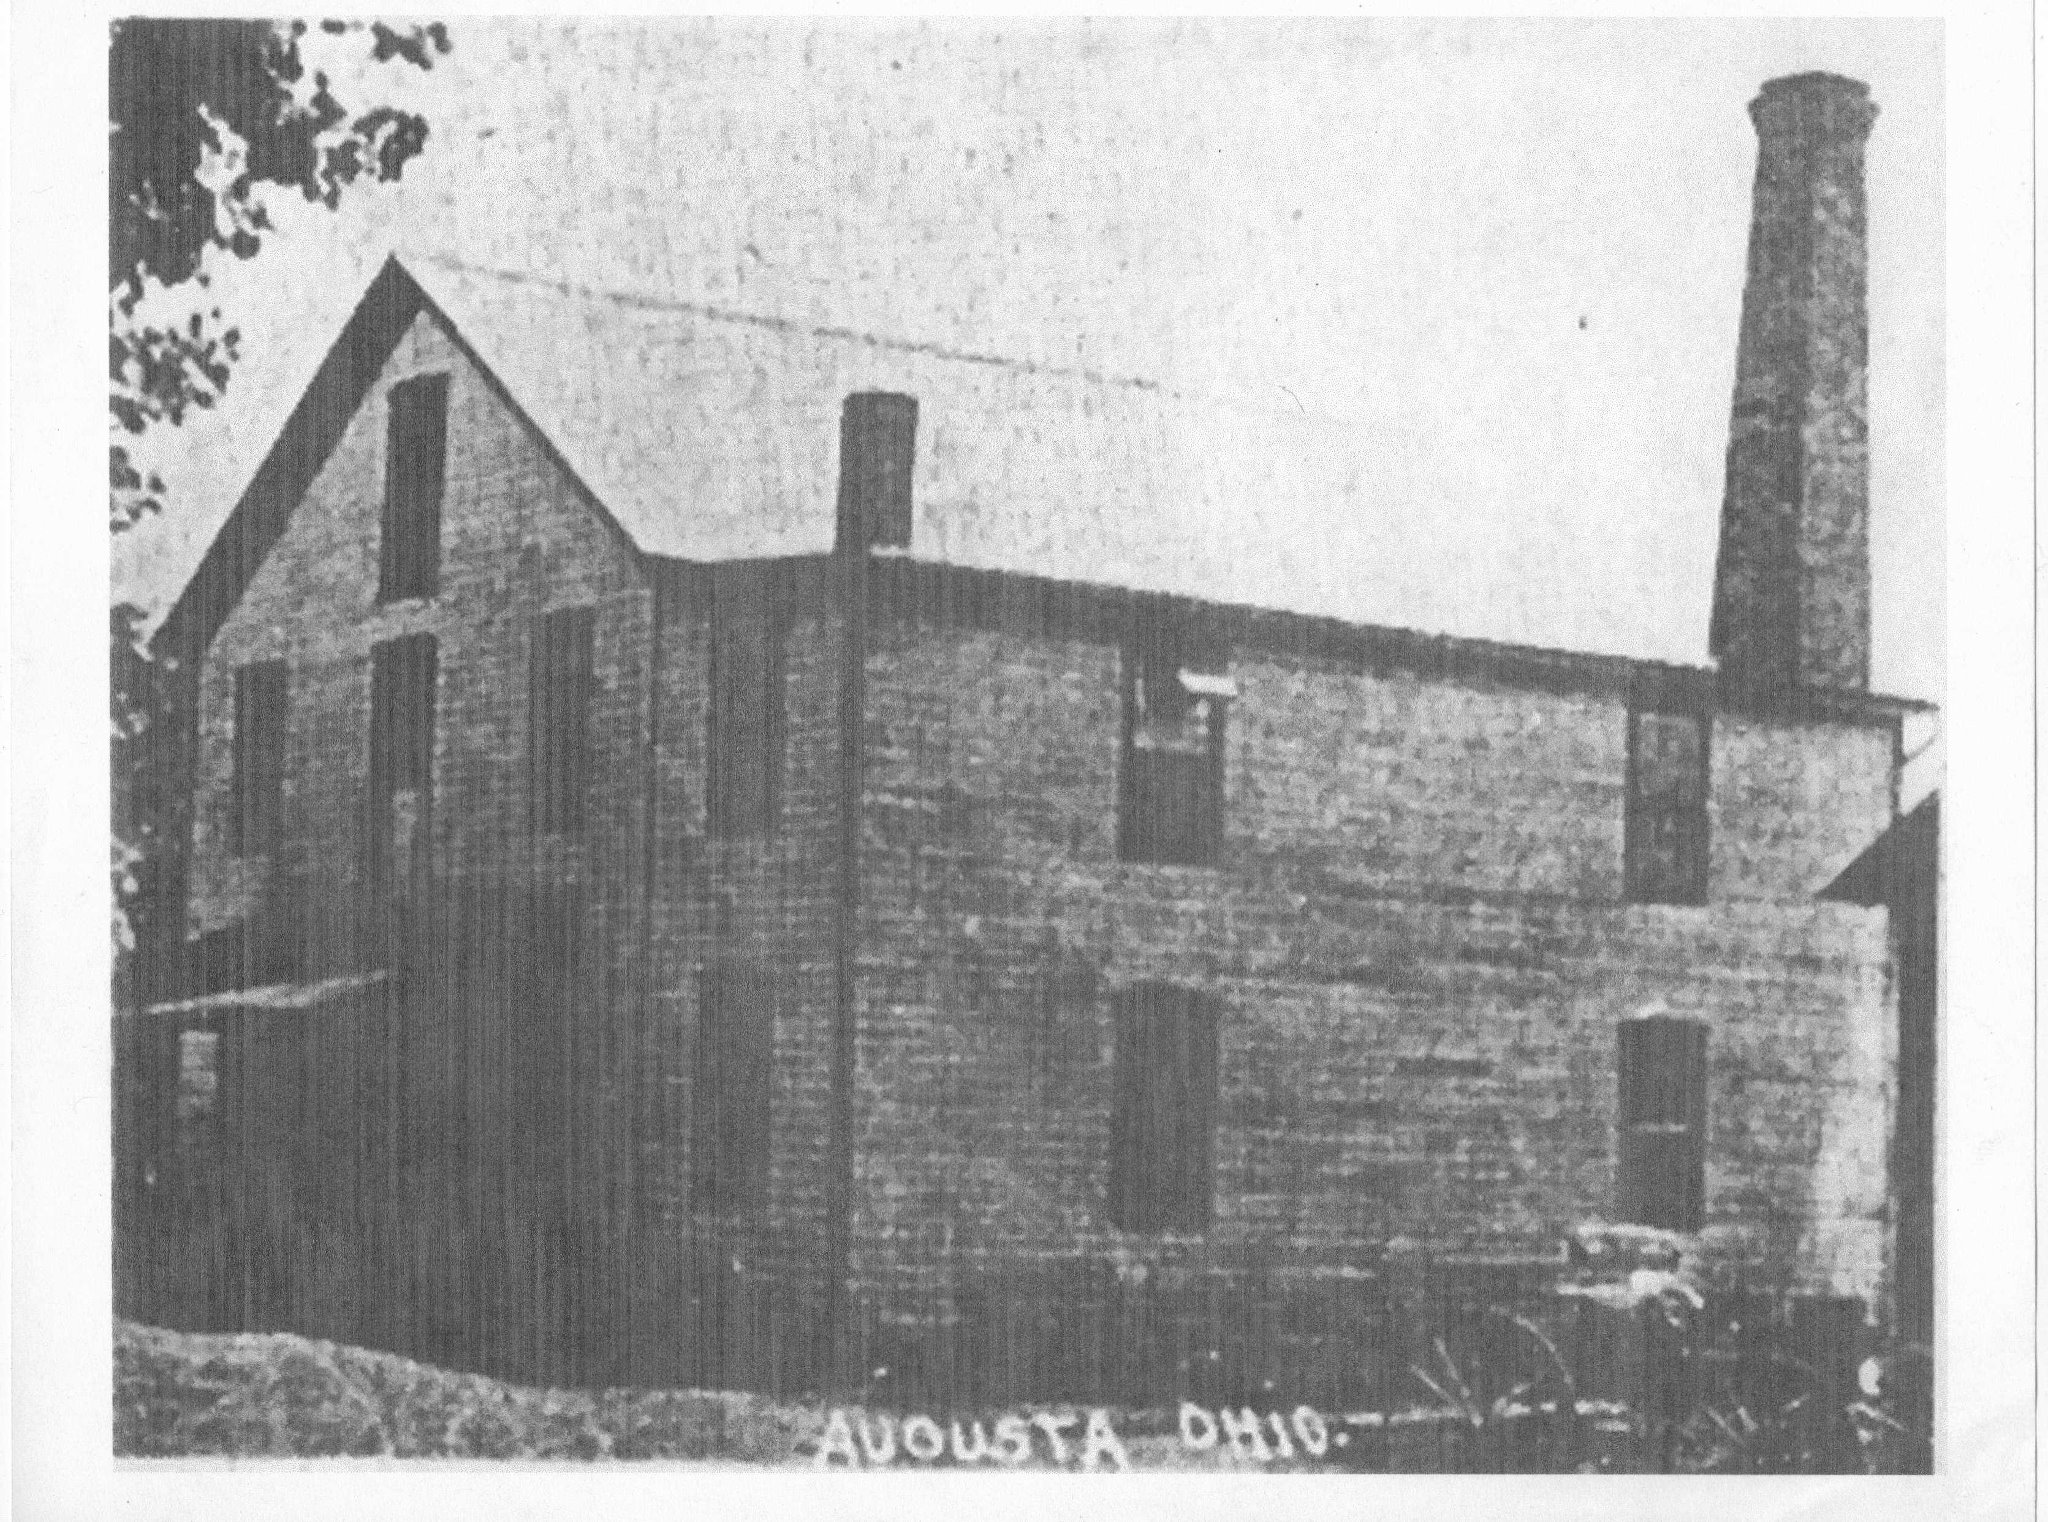 The Augusta Mill